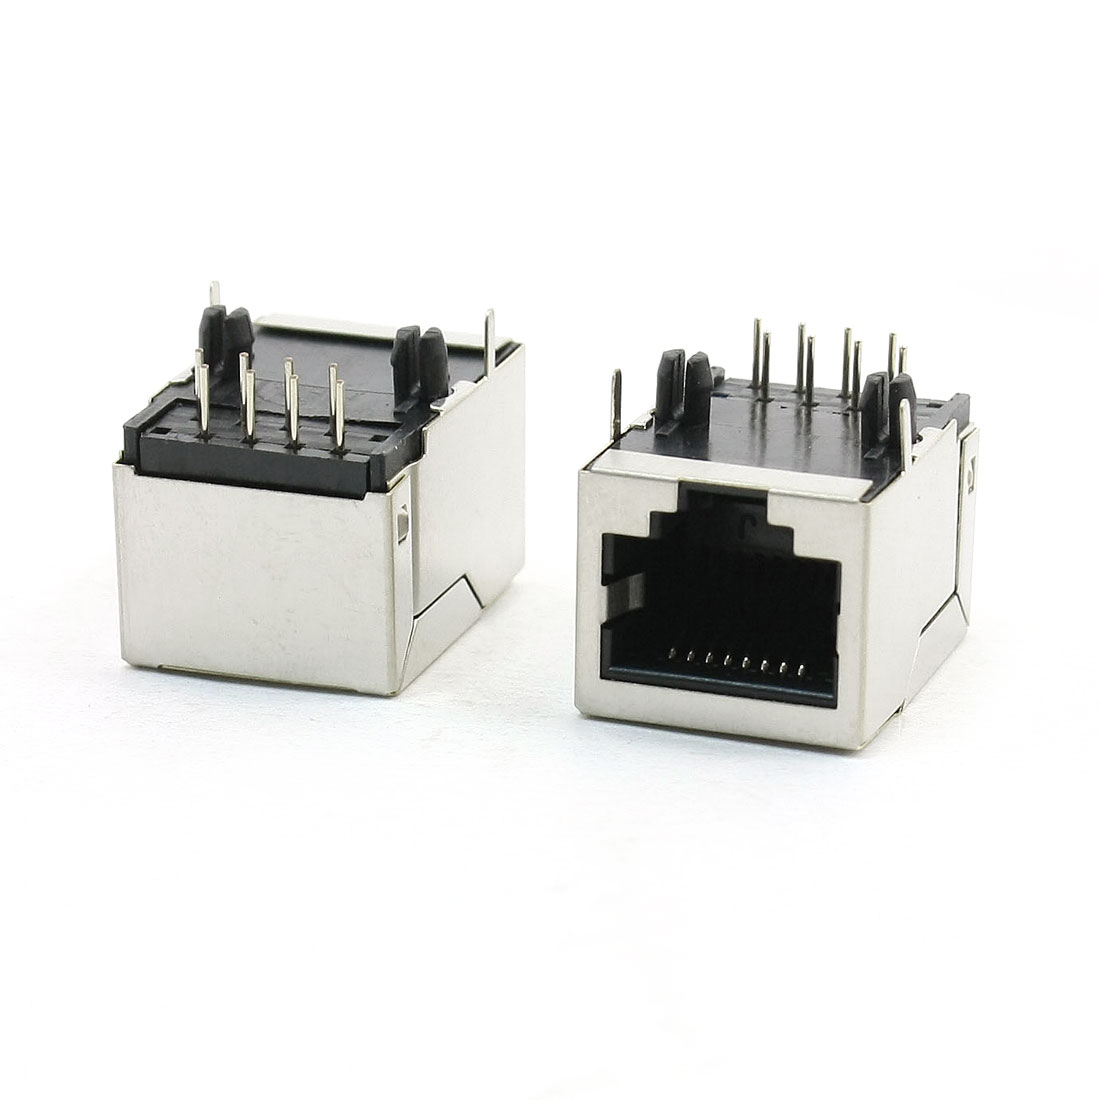 2Pcs Stainless Steel Shielded 8 Pin 8P8C RJ45 PCB Jack 21mmx17mmx16mm